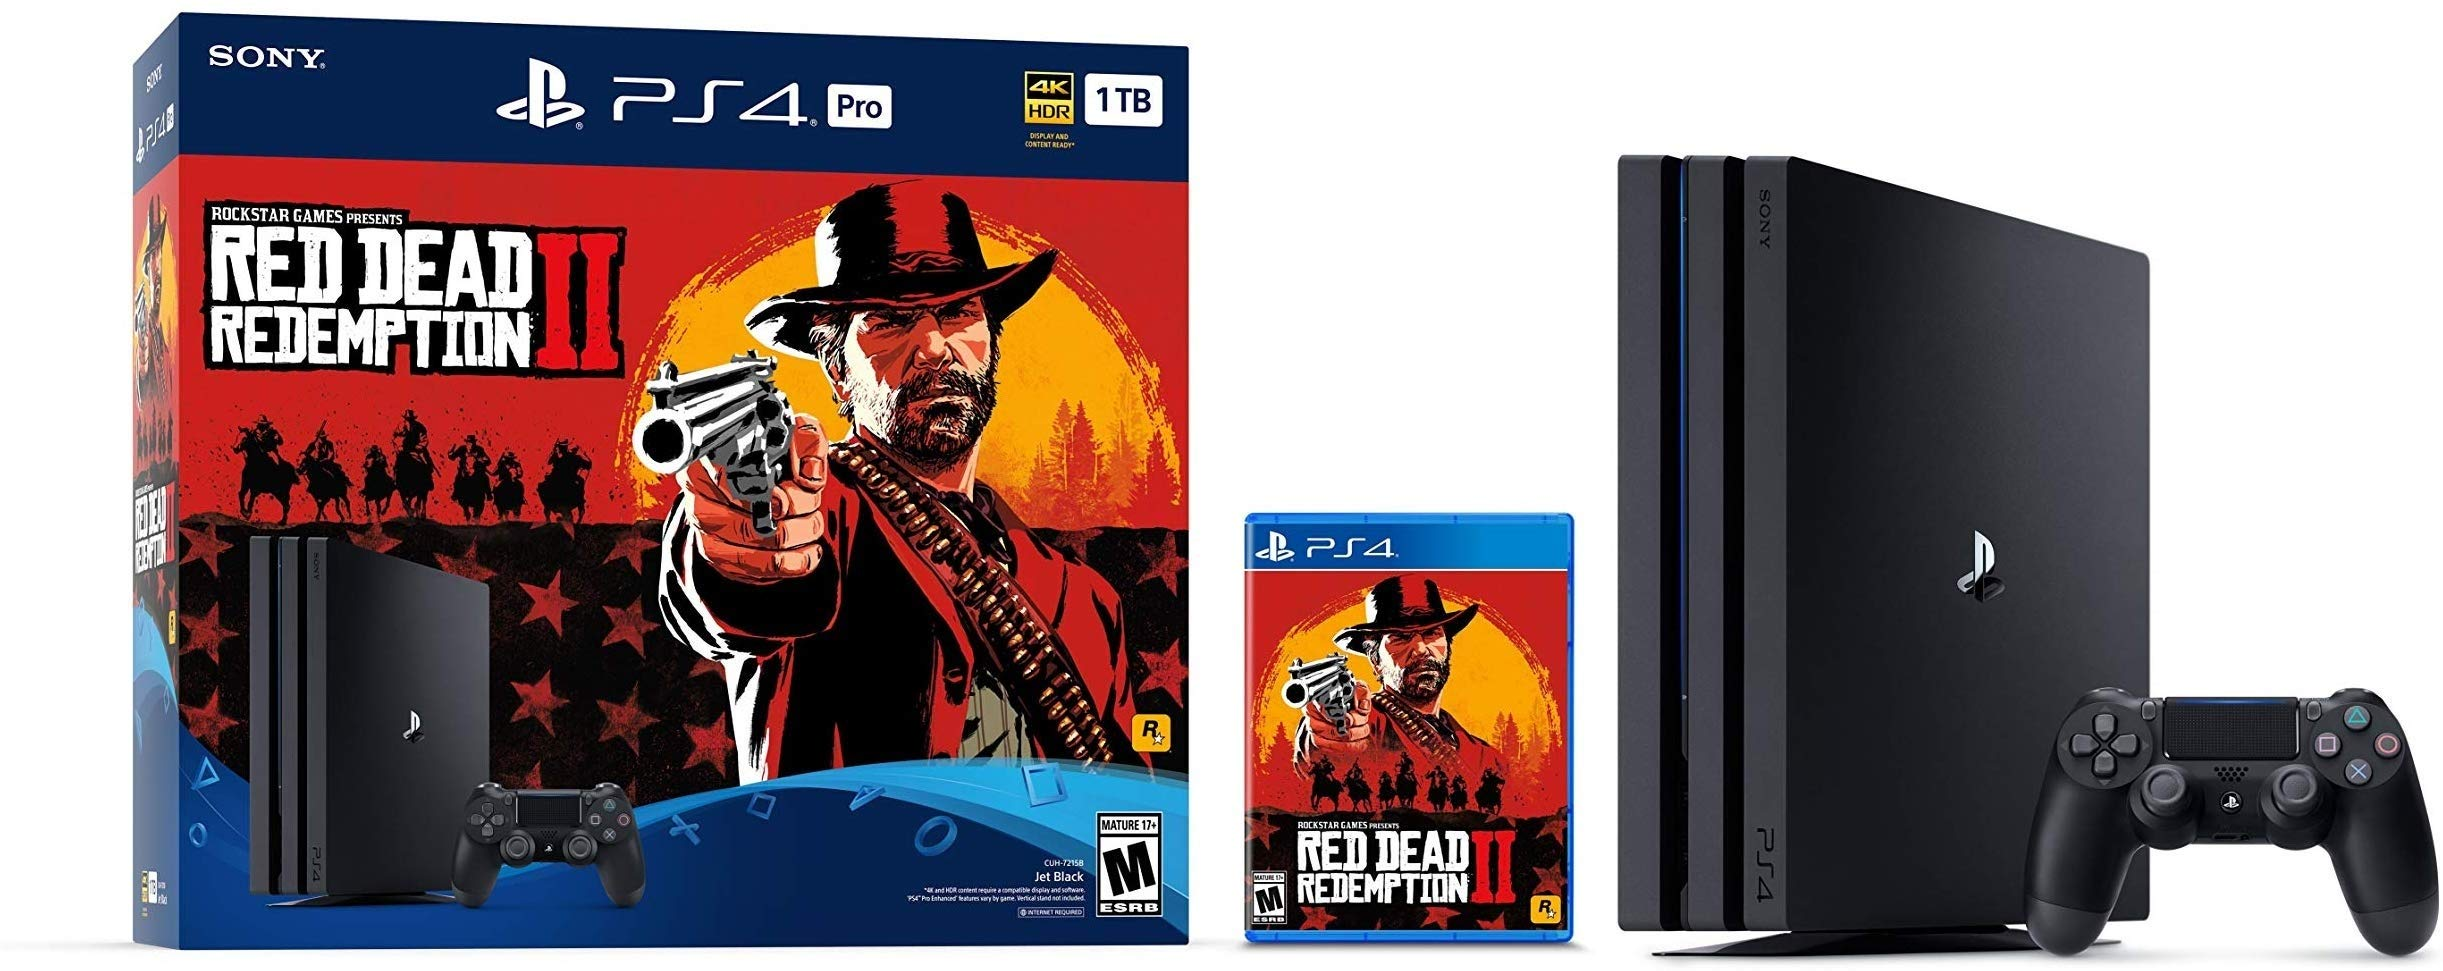 2019 Newest Sony PlayStation 4 Pro Console with Red Dead Redemption 2 Bundle | Customize Your Own Special PS4 Storage Upto 1TB/2TB/HDD/SSD